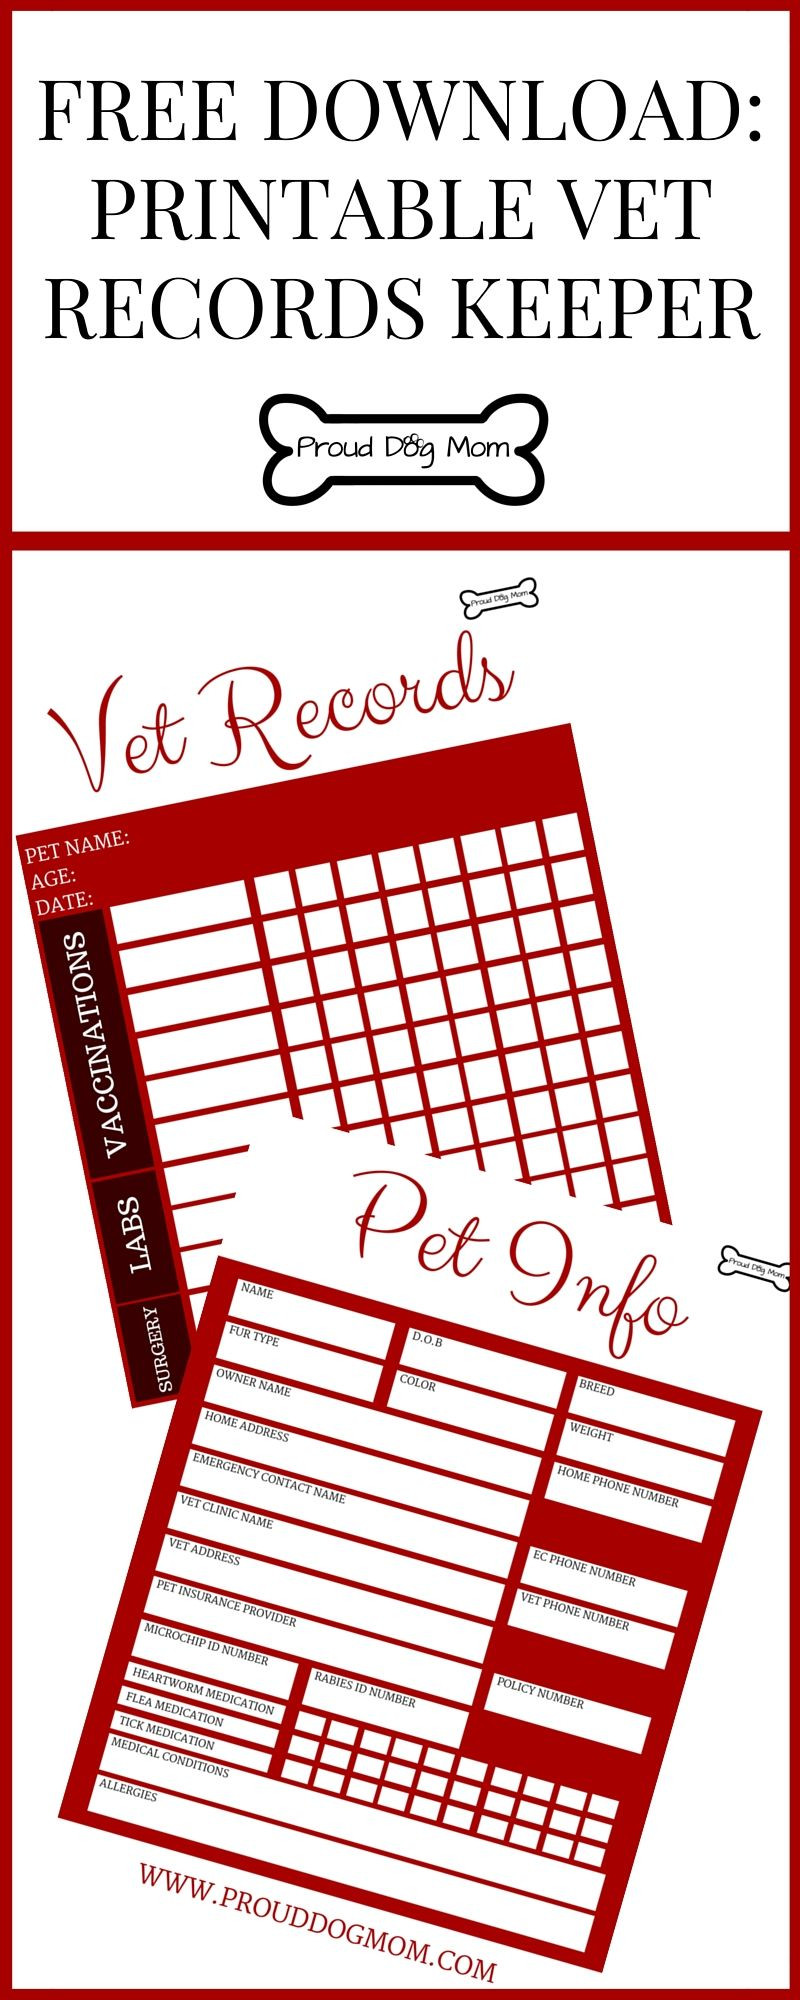 Dog Shot Record Template